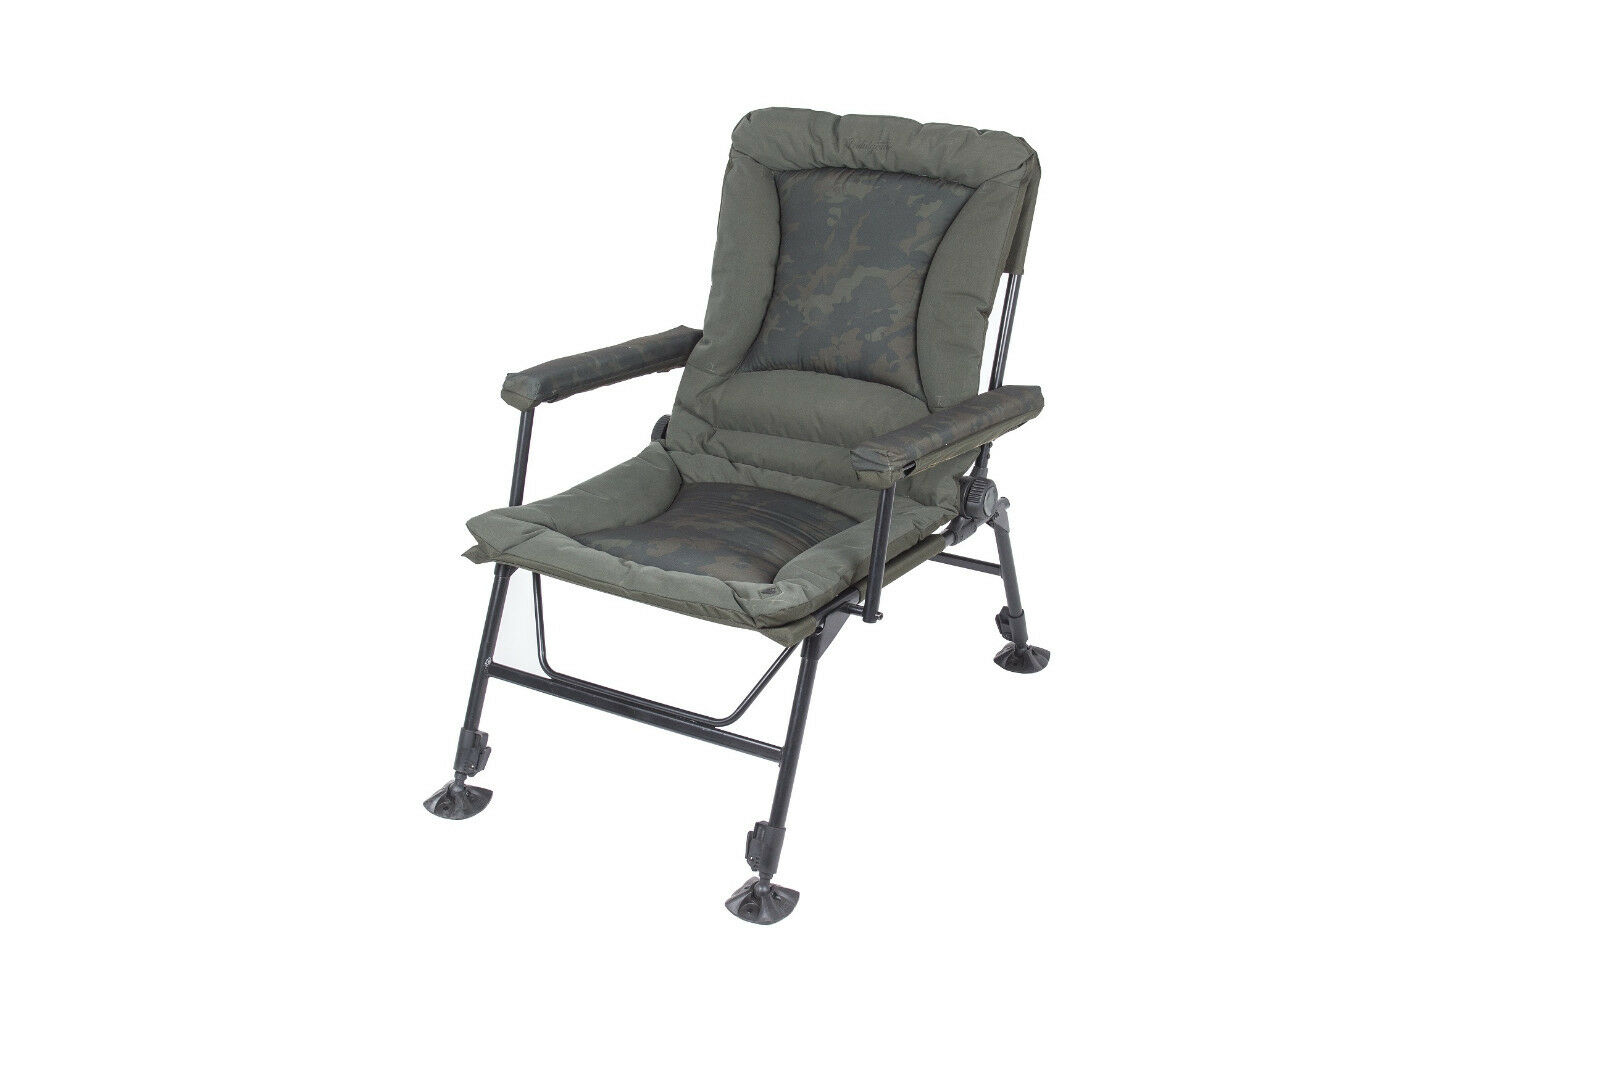 Nash Indulgence Big Daddy Long Legs  Camo T9752 Stuhl Chair Karpfenstuhl  60% off